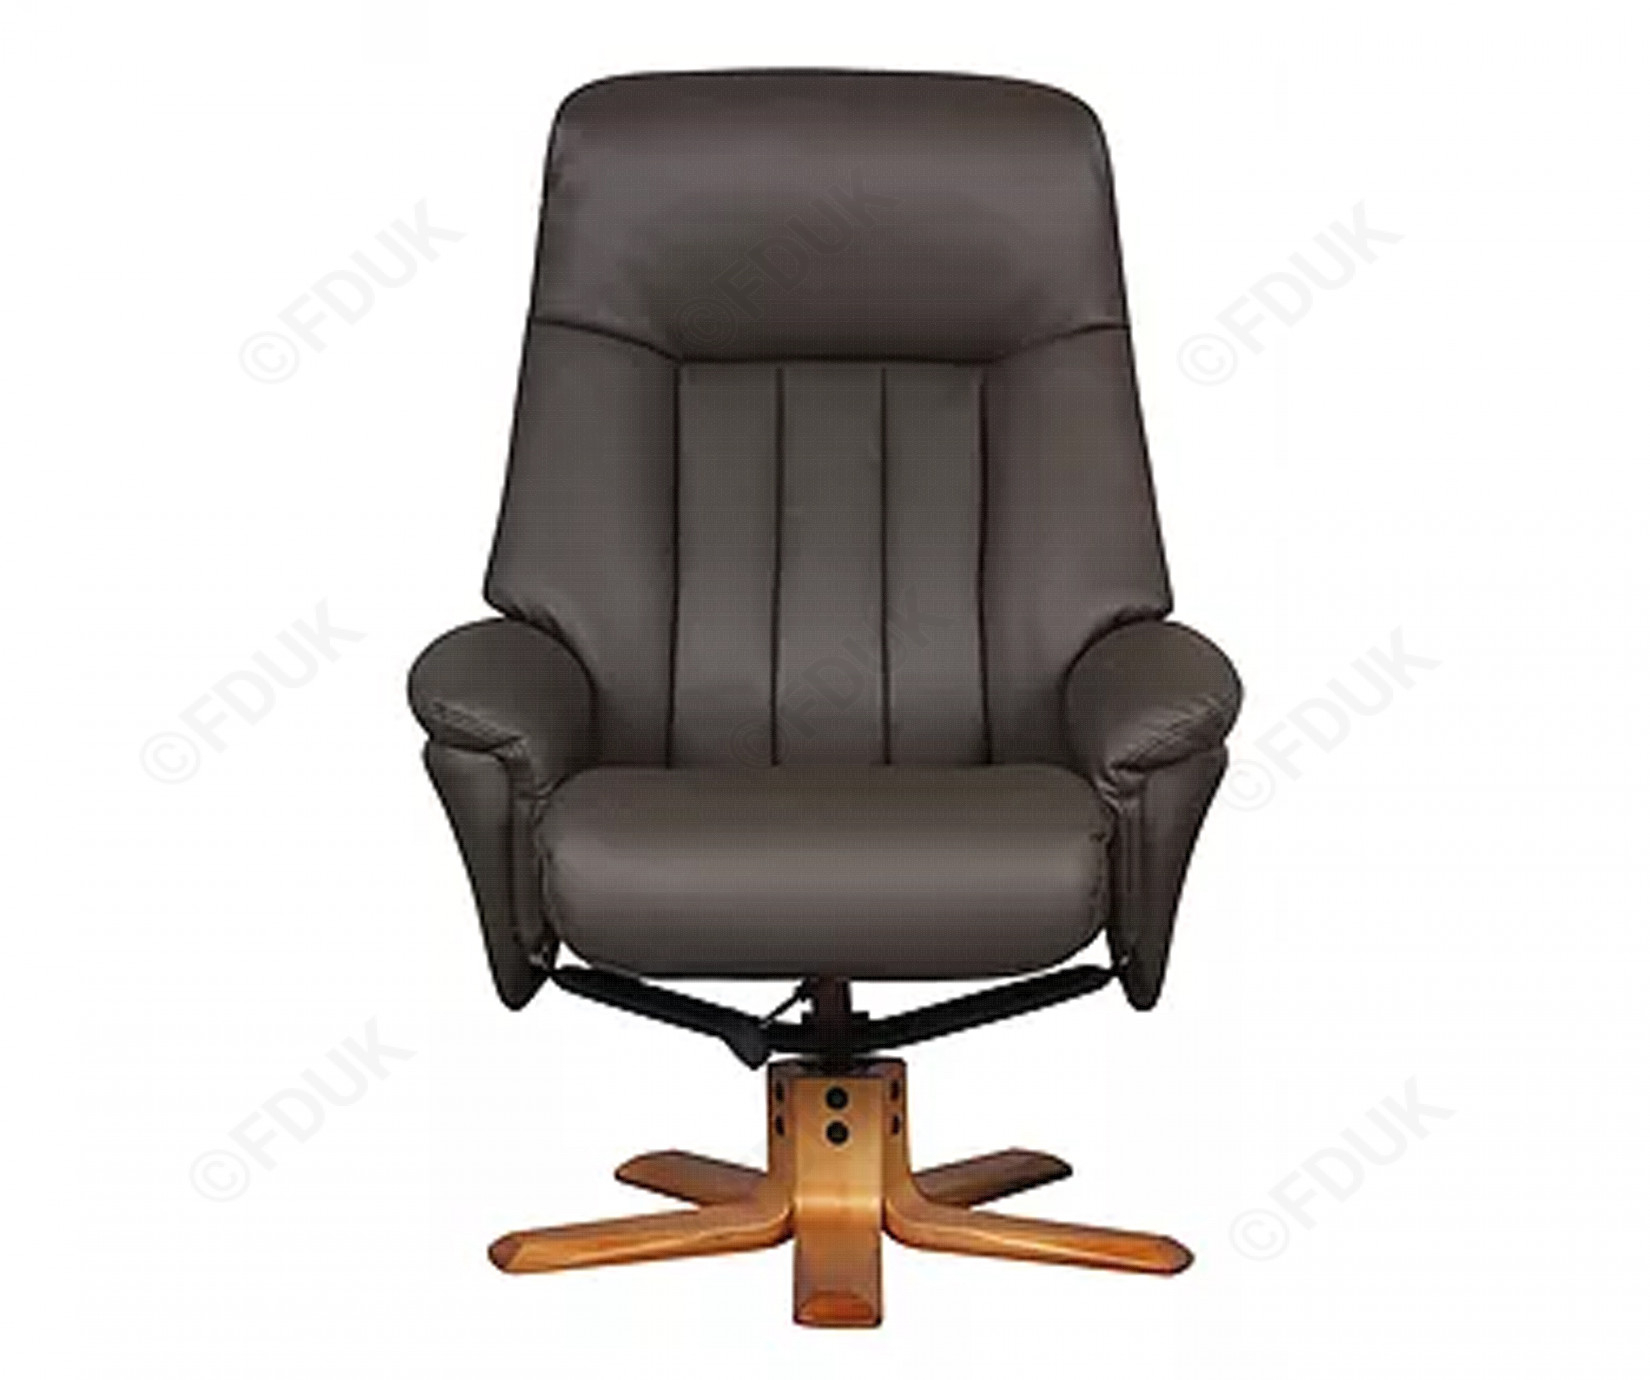 Gfa St Tropez | St Tropez Charcoal Leather Swivel Recliner Chair For Charcoal Swivel Chairs (View 14 of 25)